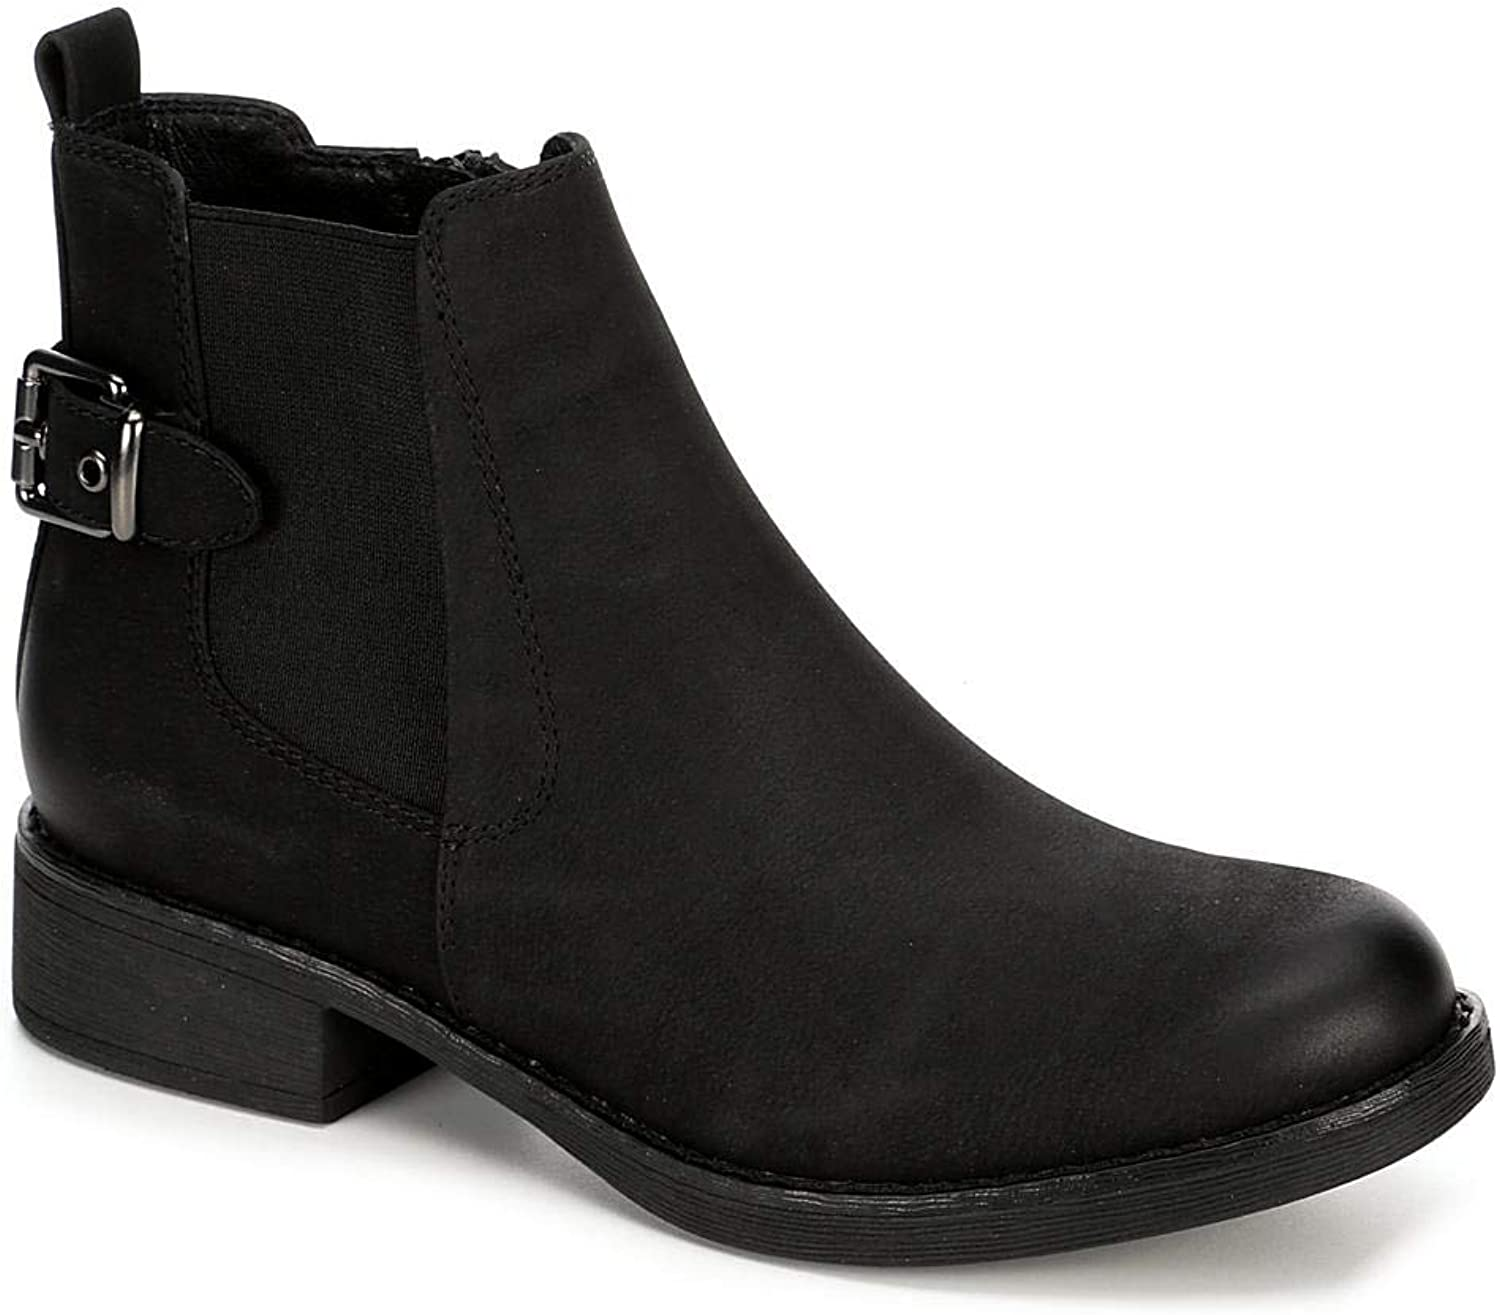 XAPPEAL Womens Chelsea Style Heeled Ankle Boot shoes